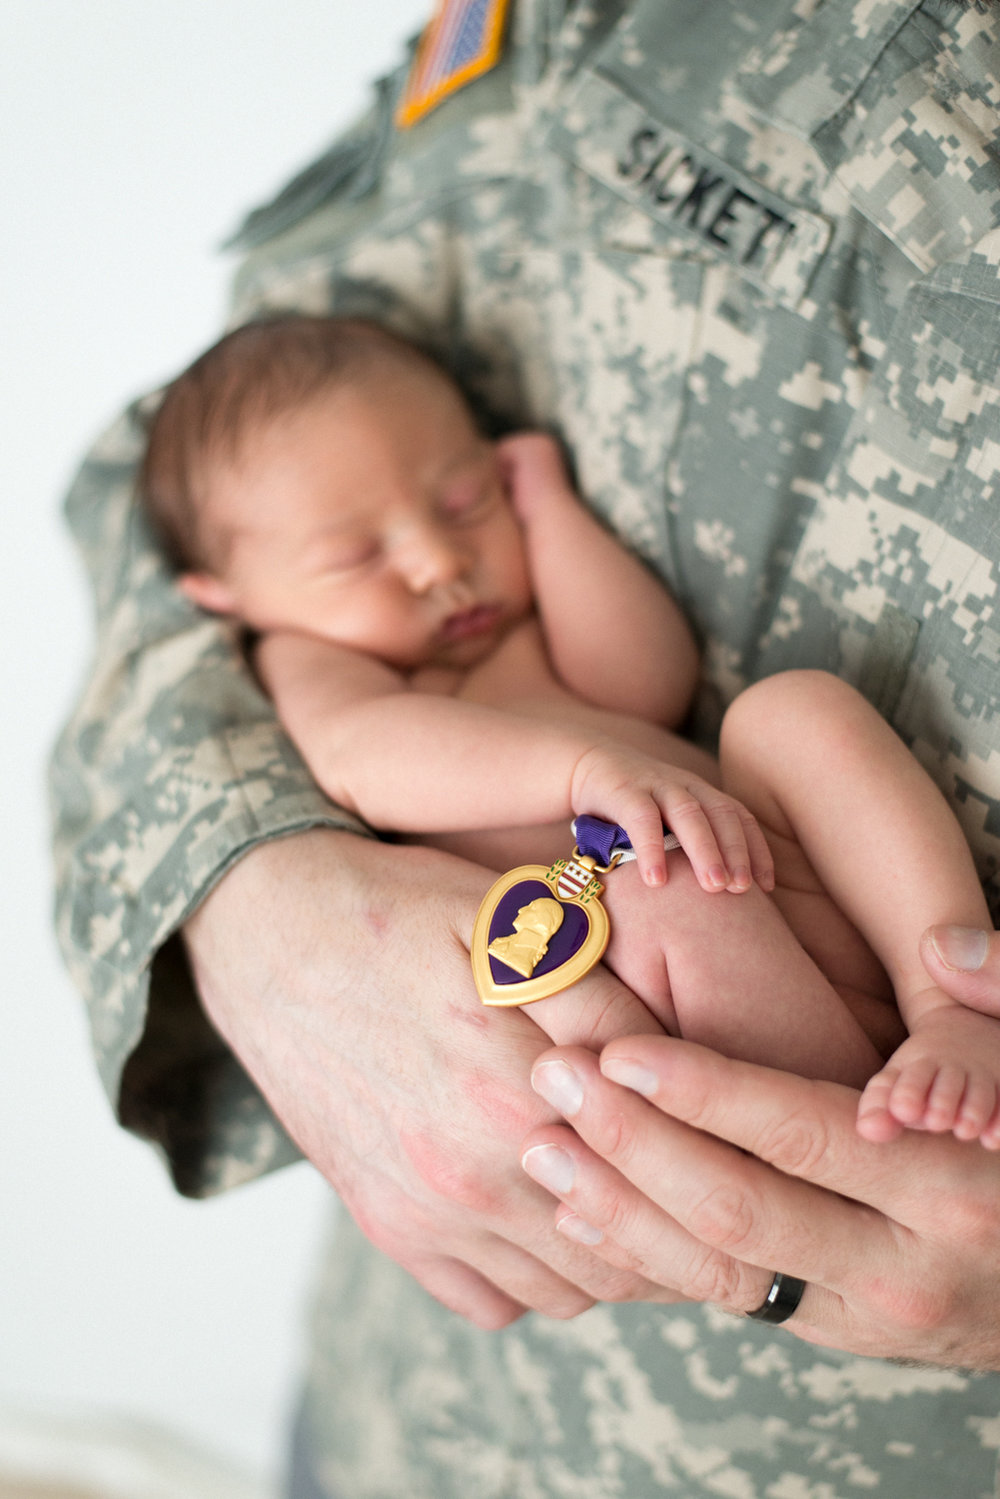 portland-newborn-baby-photographer-special-forces-purple-heart-veteran-army-shelley-marie-photo-28